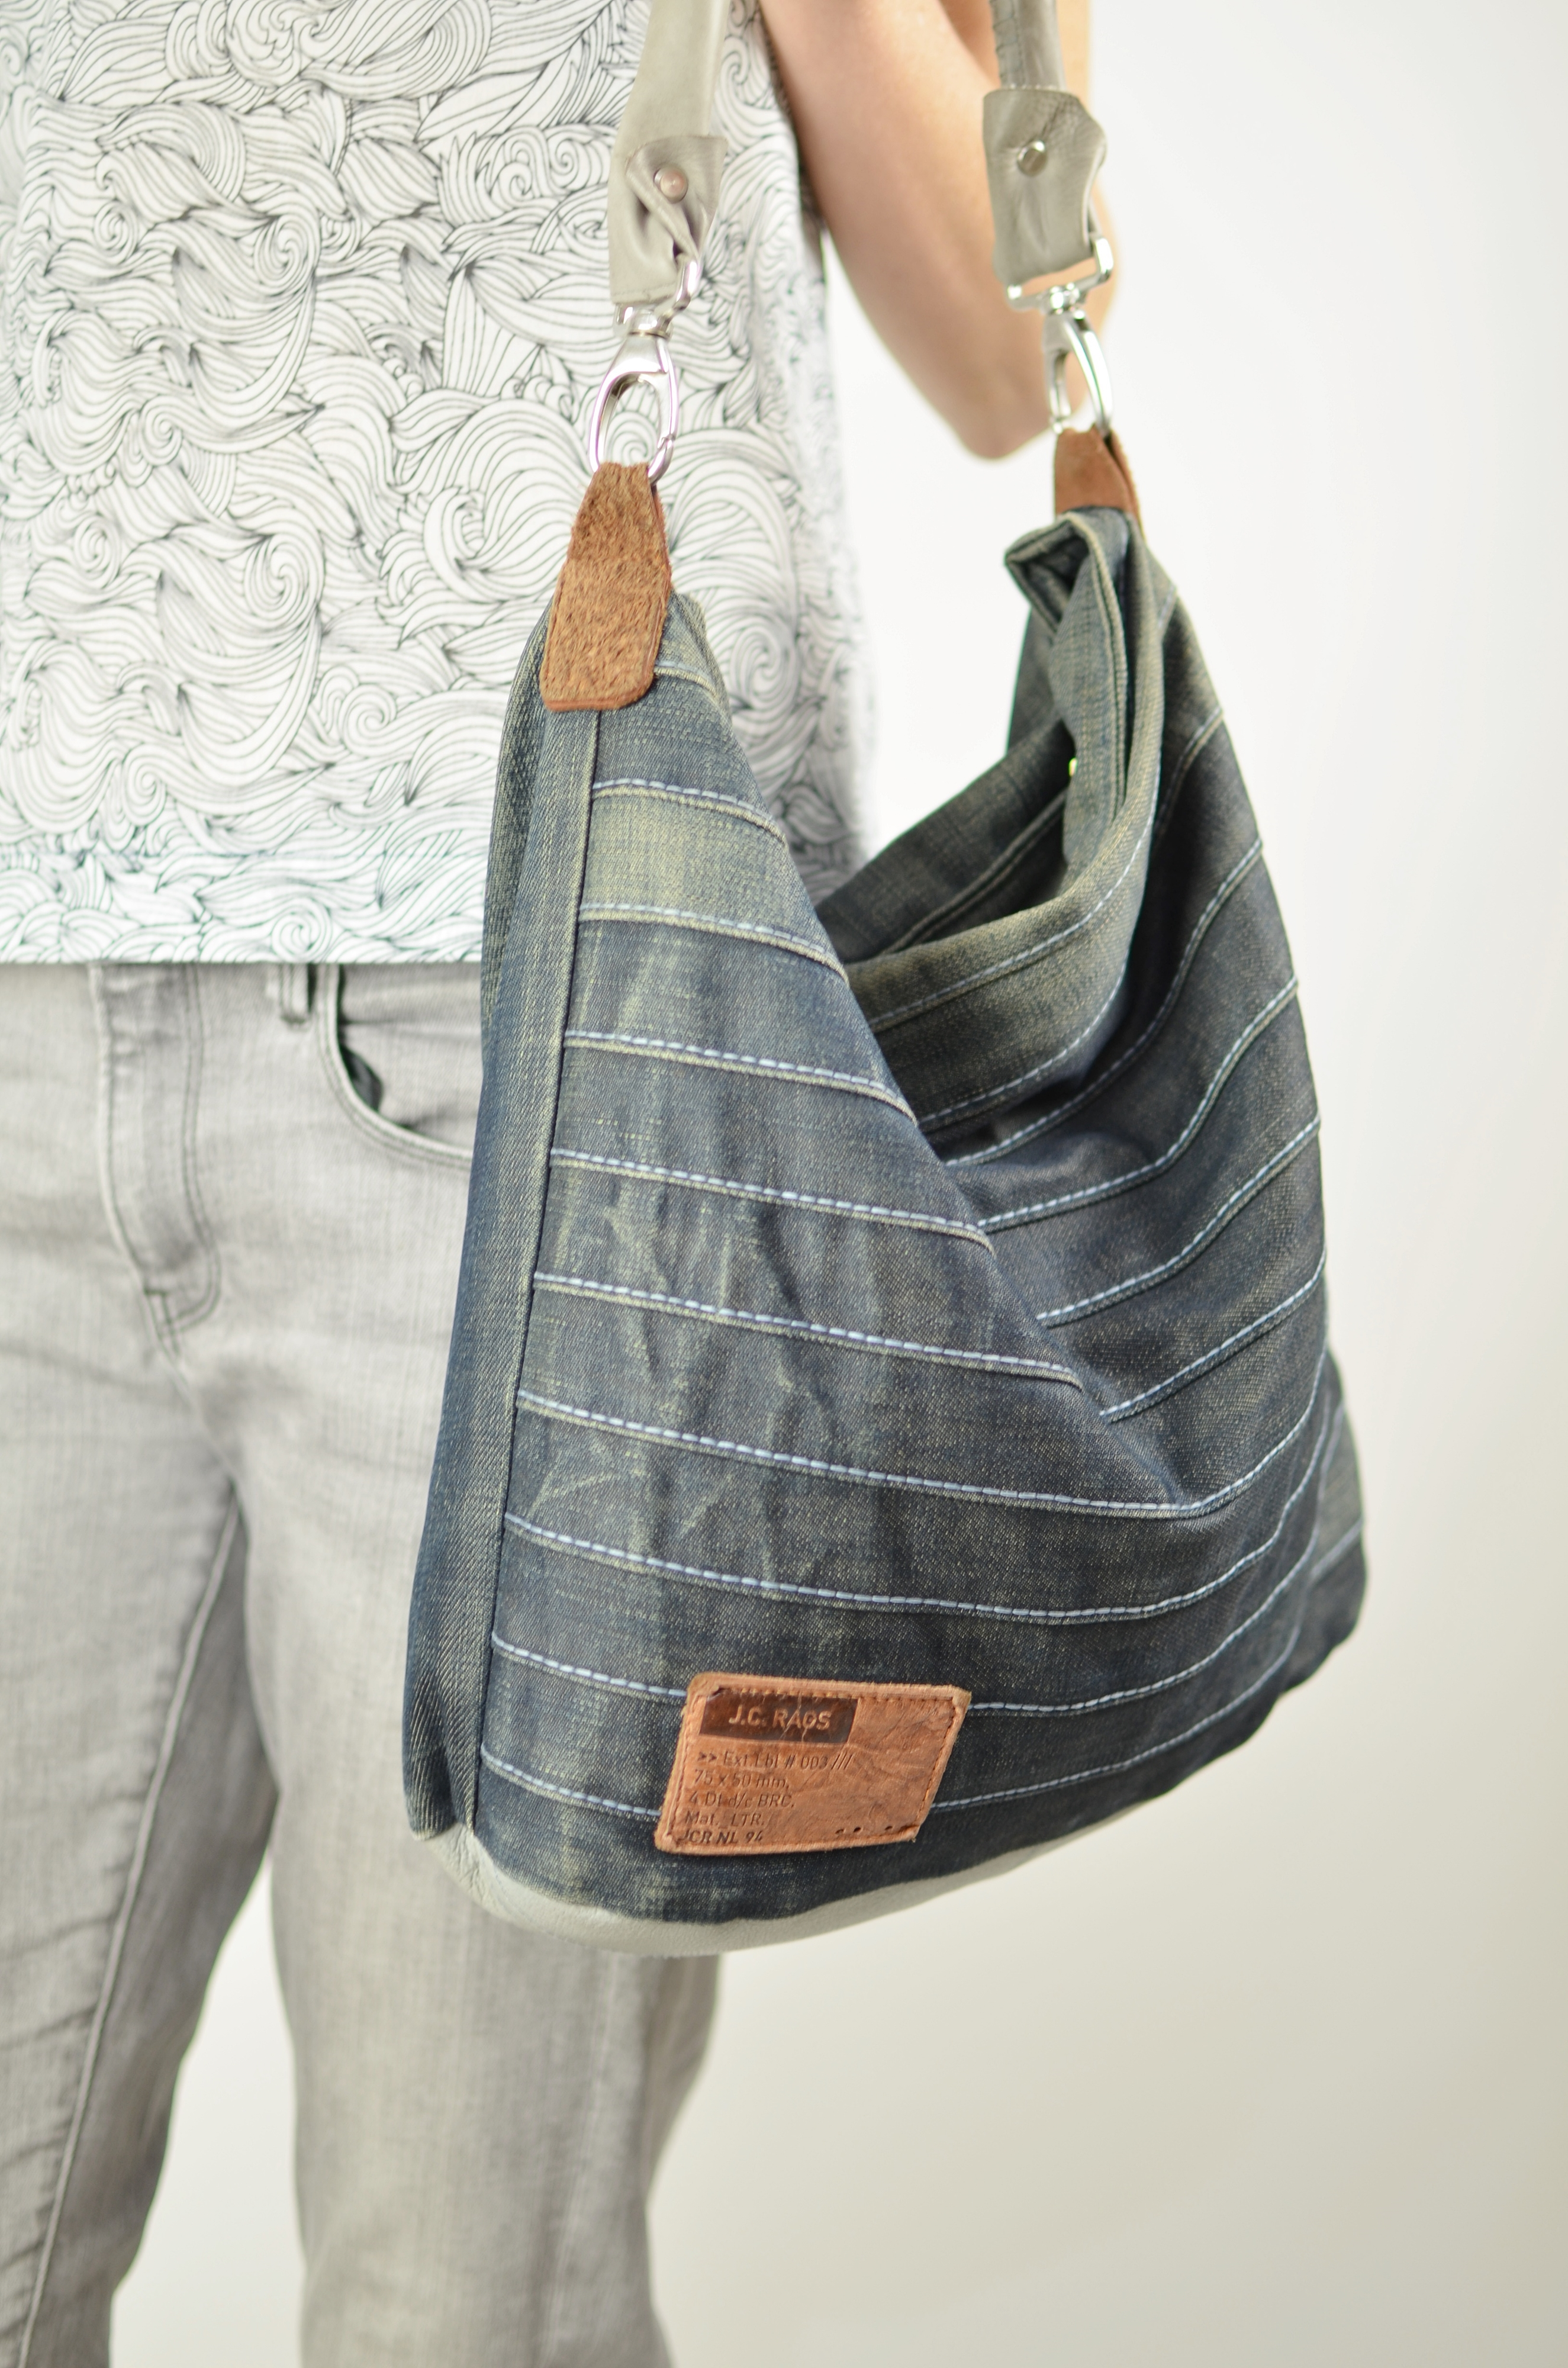 Jeans Upcycling Tasche \